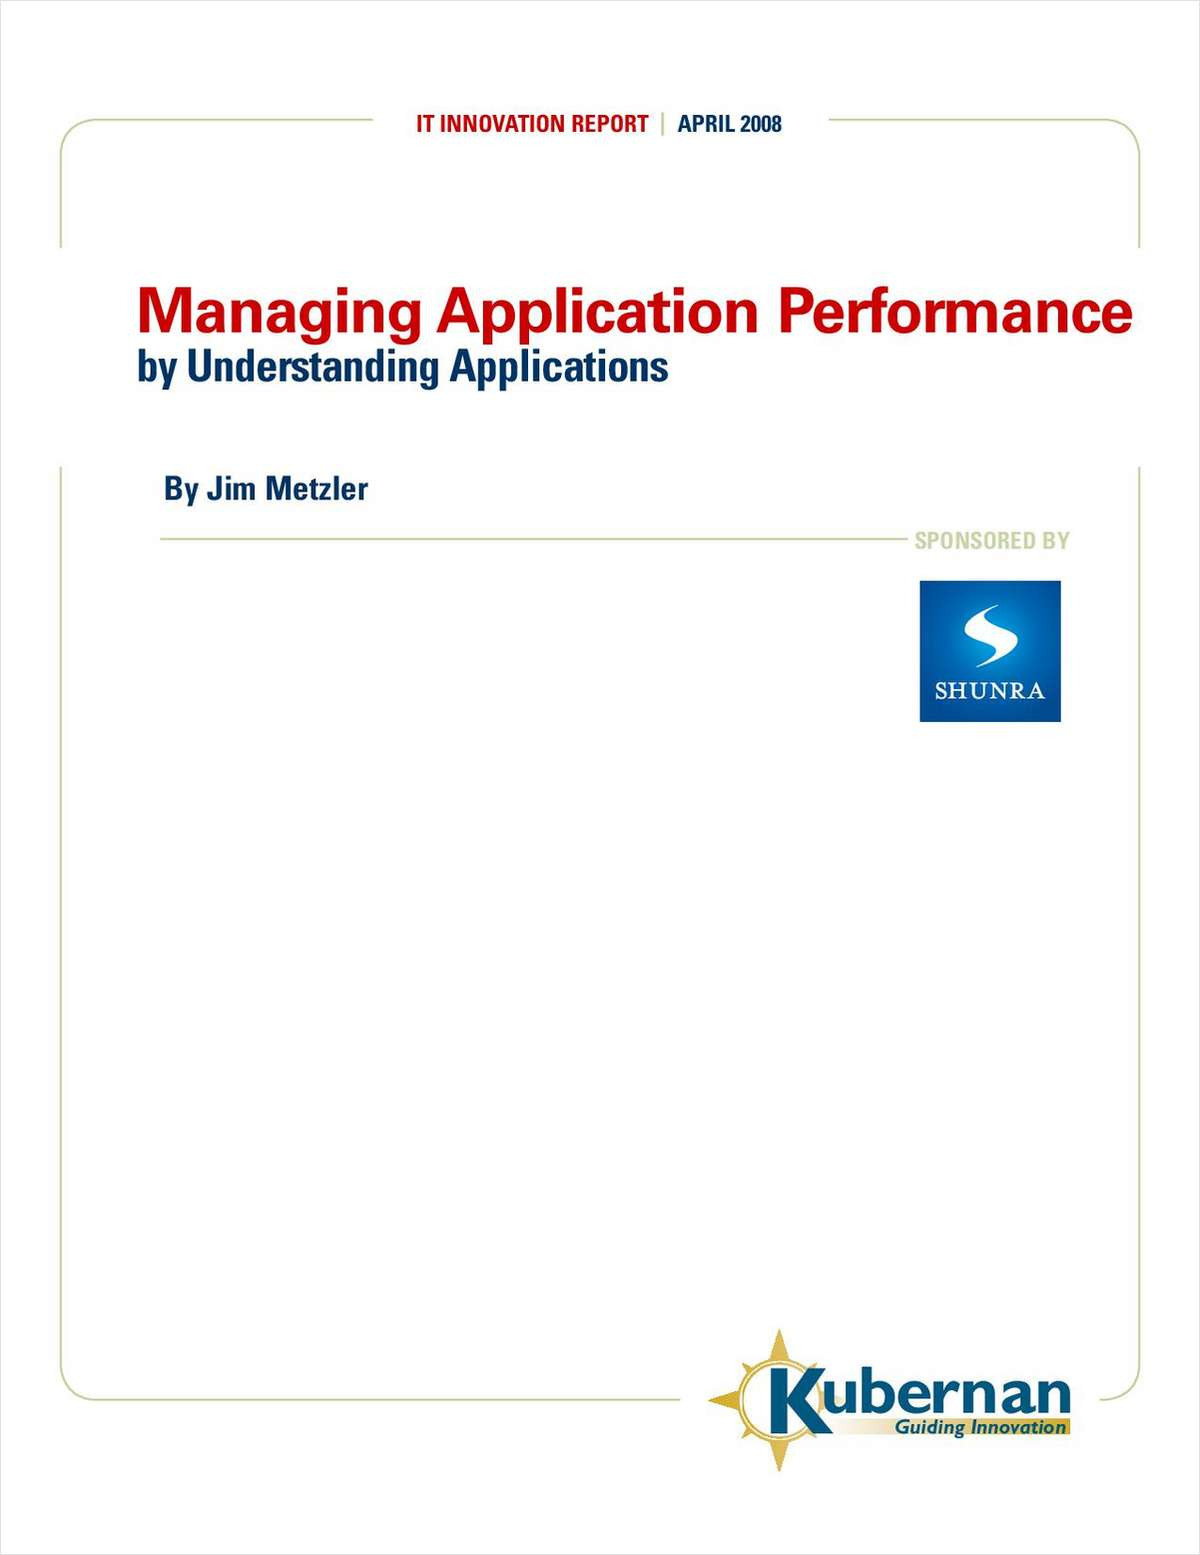 Managing Application Performance by Understanding Applications